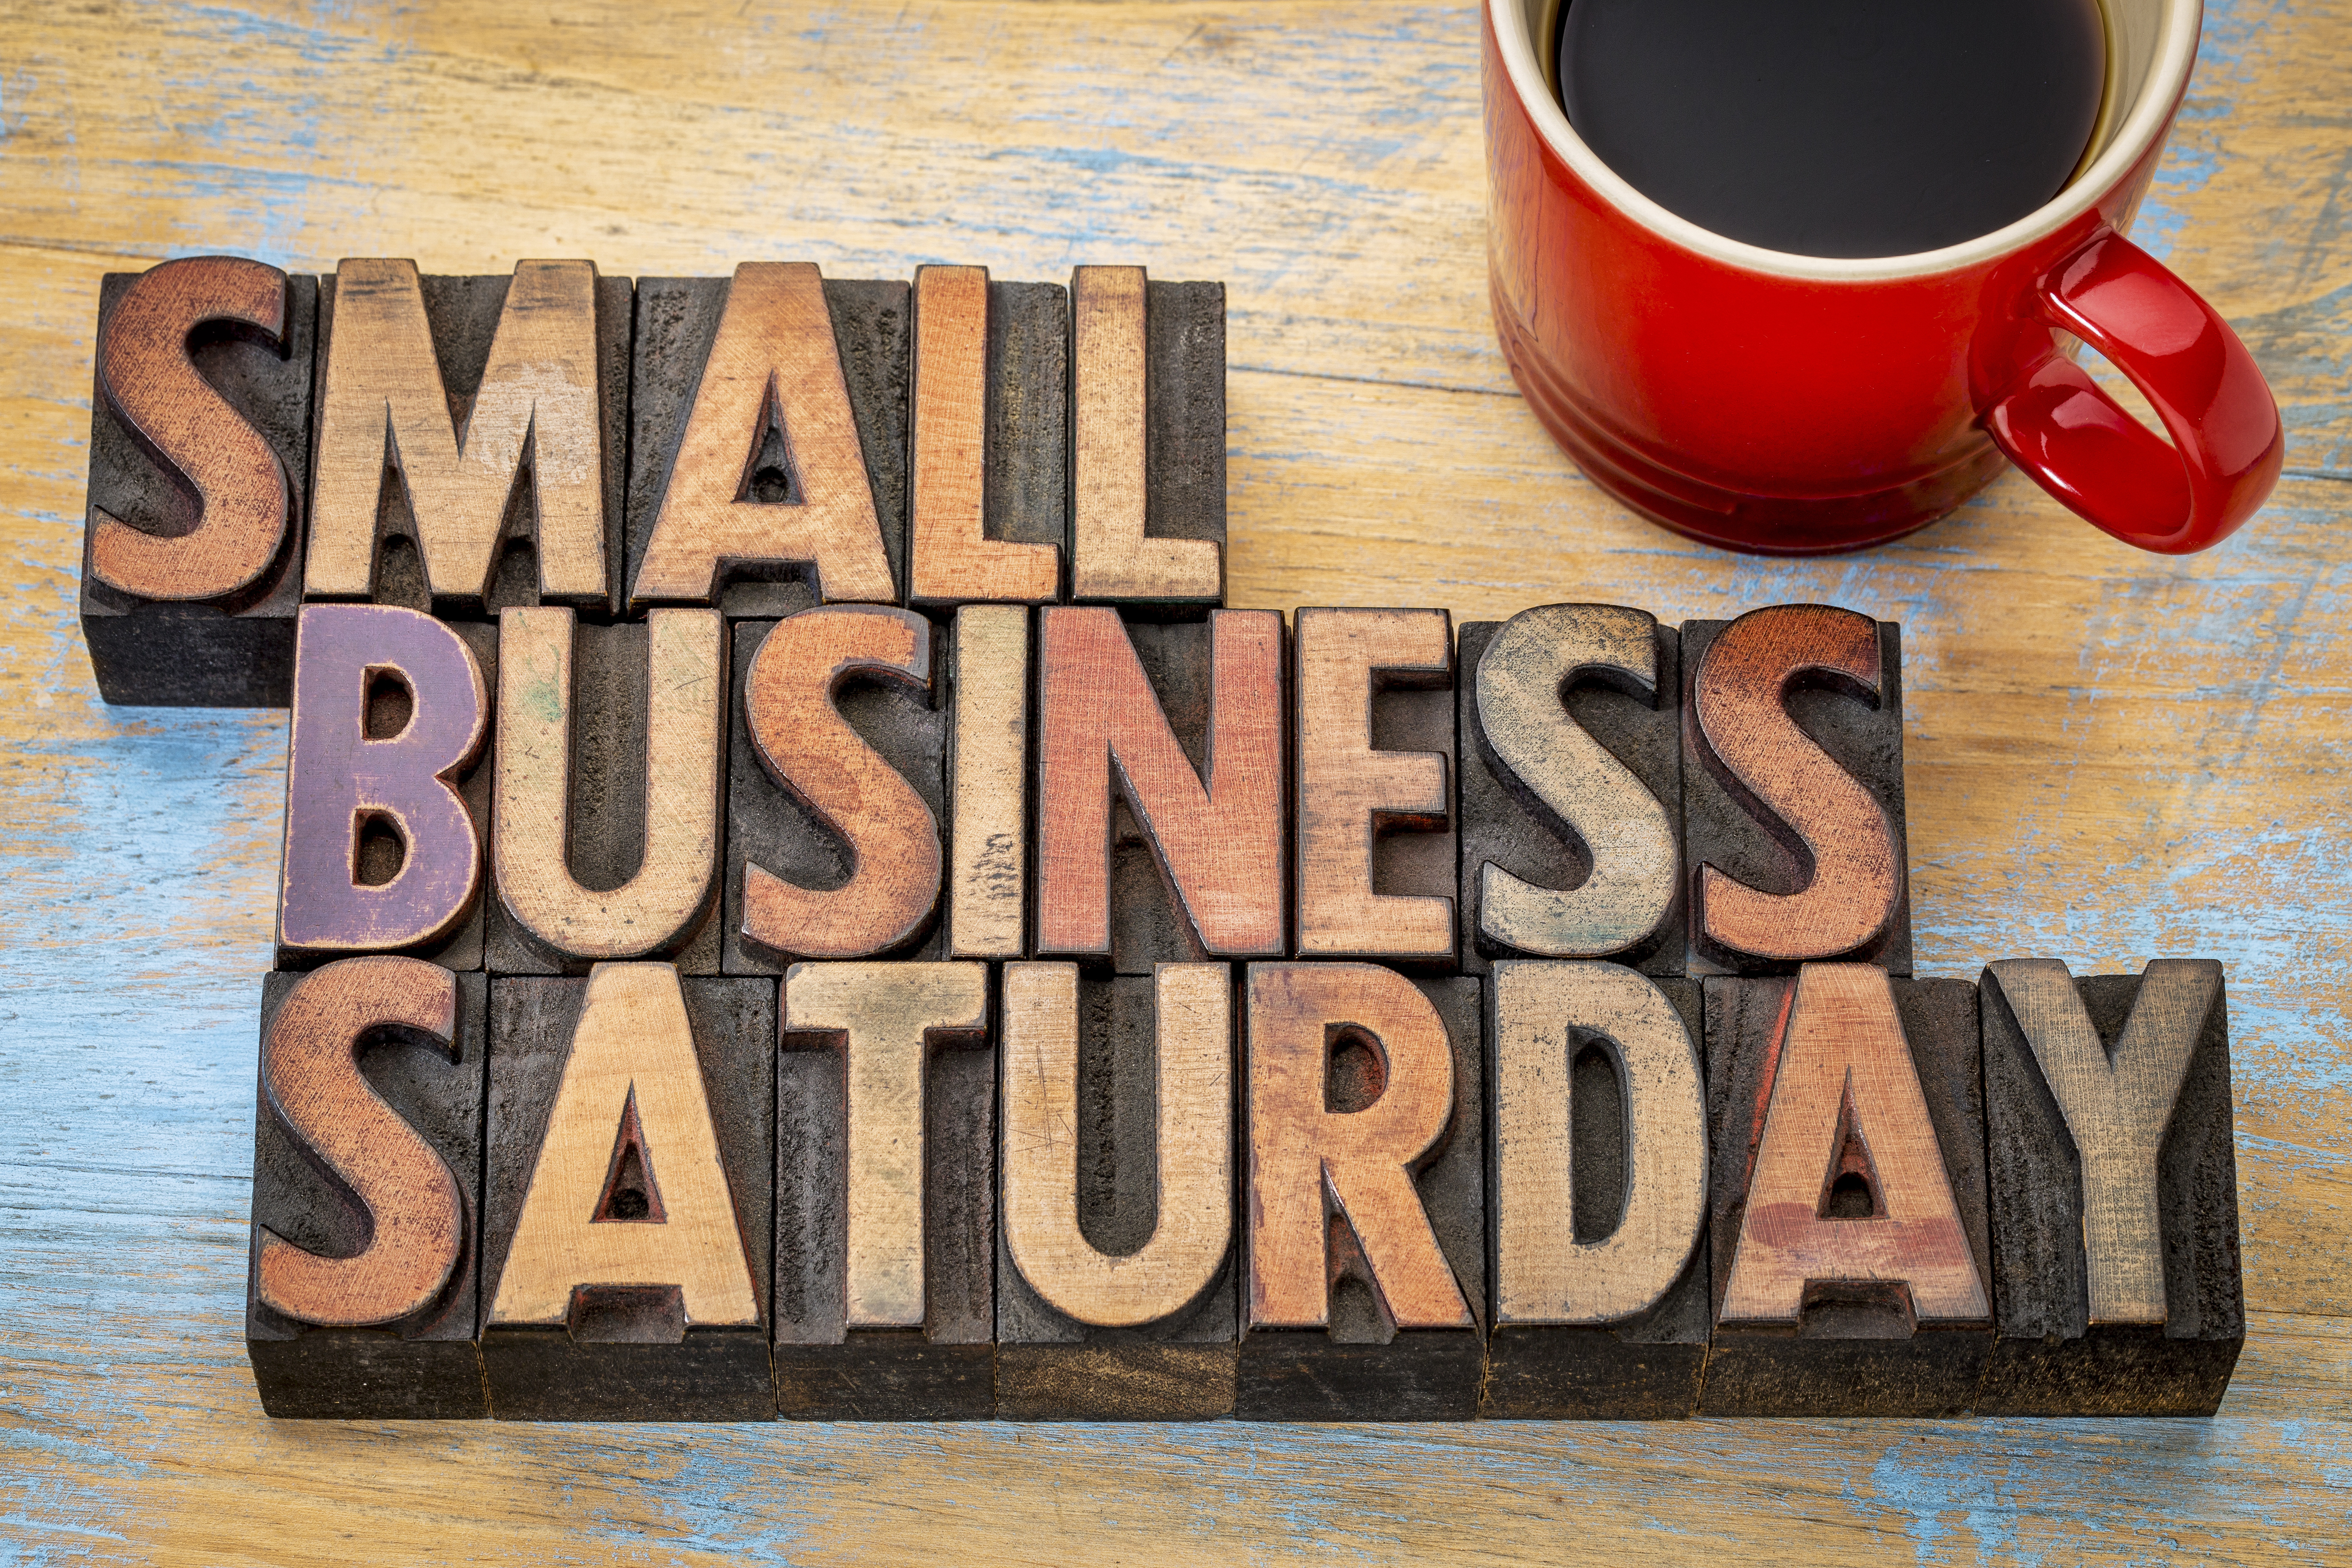 Small Business Saturday encourages consumers to shop local